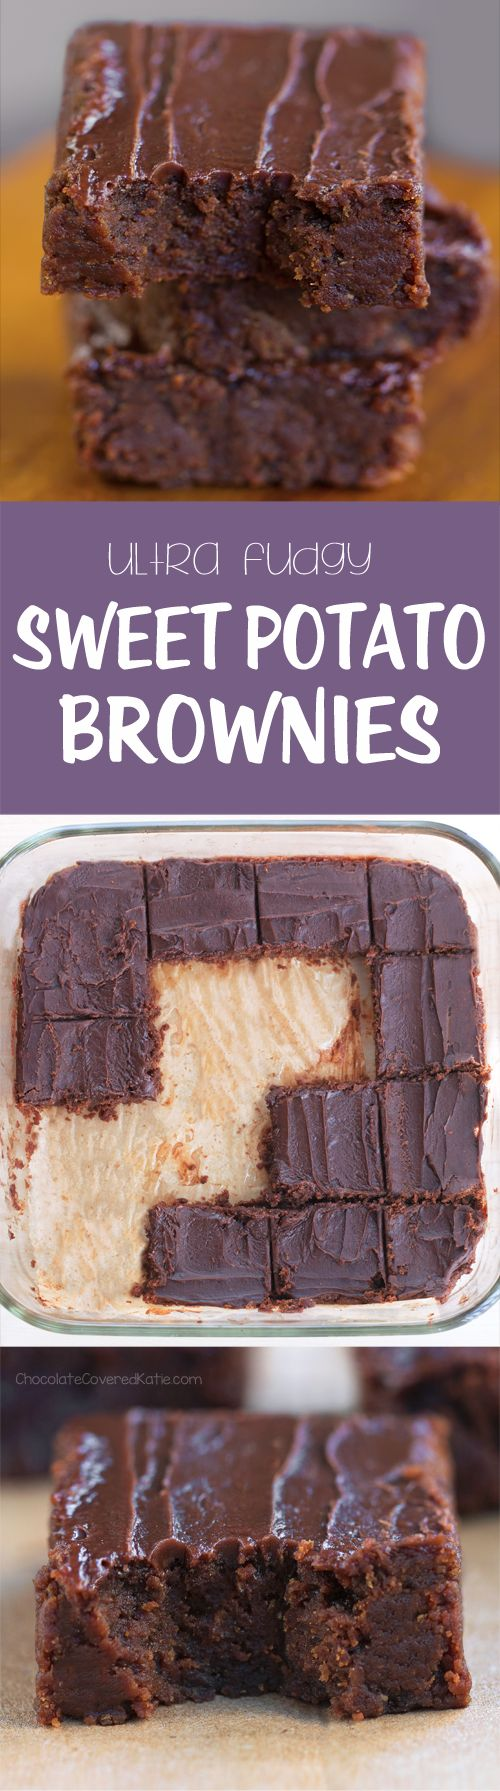 Ingredients: 1 large sweet potato, 1/2 cup cocoa powder, 3 tbsp... Full recipe: chocolatecoveredkatie.com/2016/10/13/sweet-potato-brownies-recipe/ @choccoveredkt